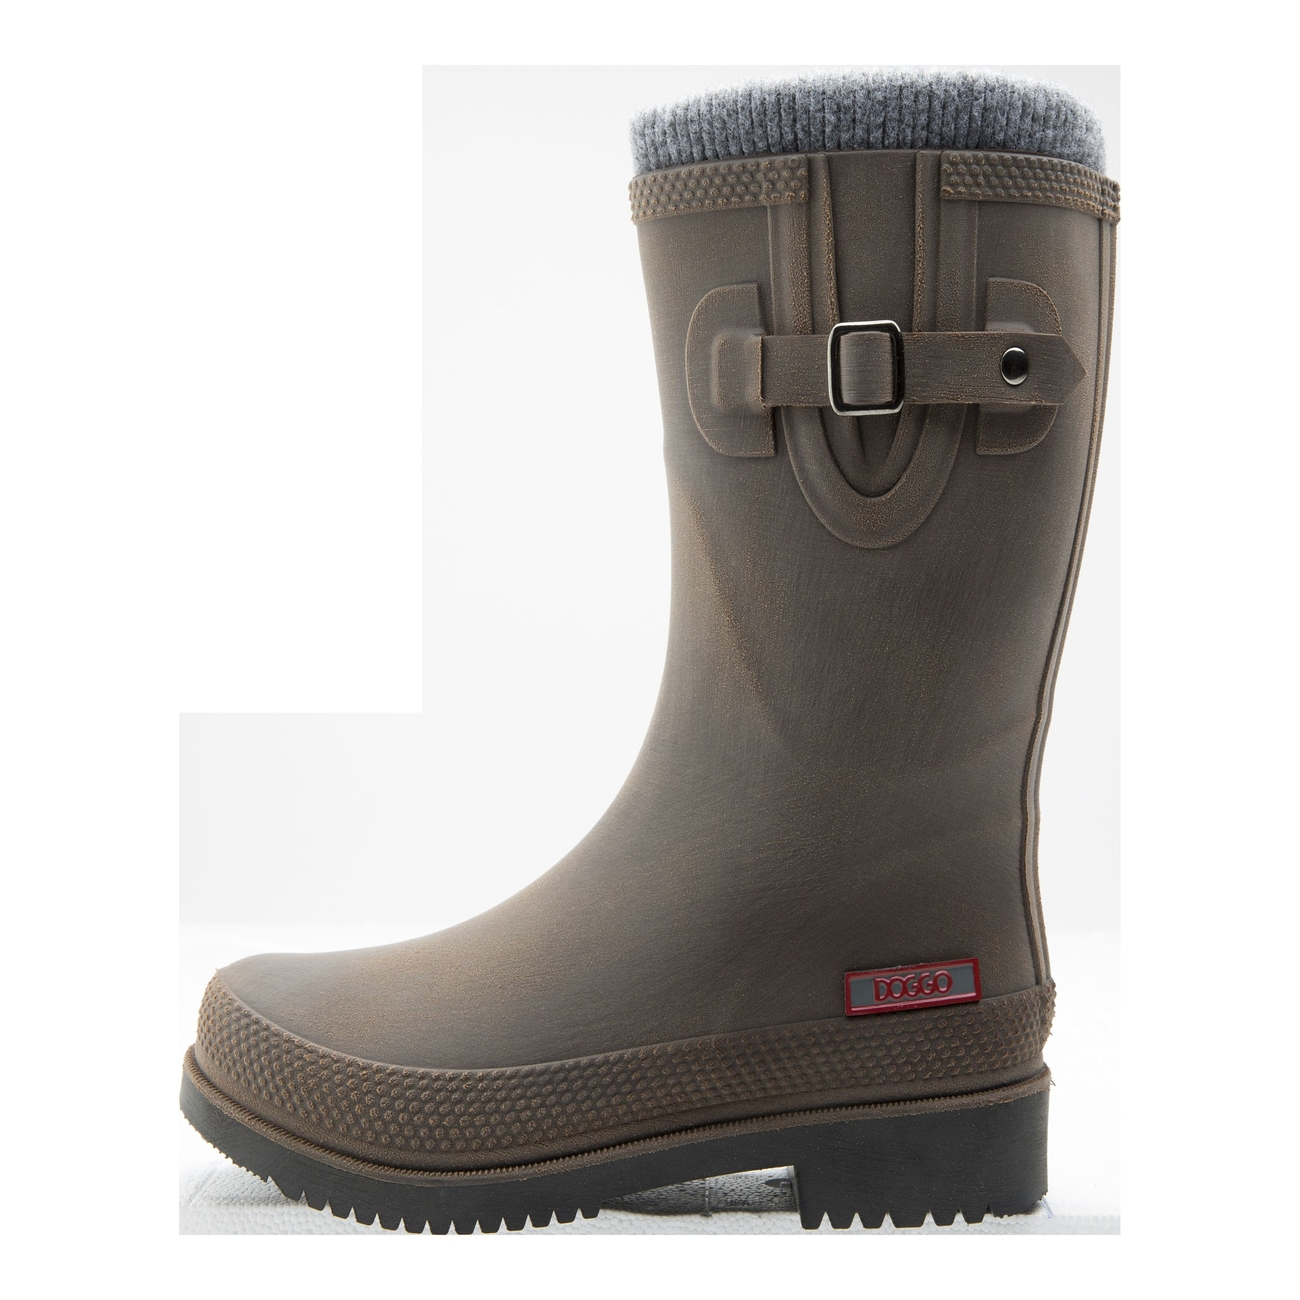 competitive price 94a51 786b2 Doggo Damen Winter-Gummistiefel - Lotte Brushed gefüttert